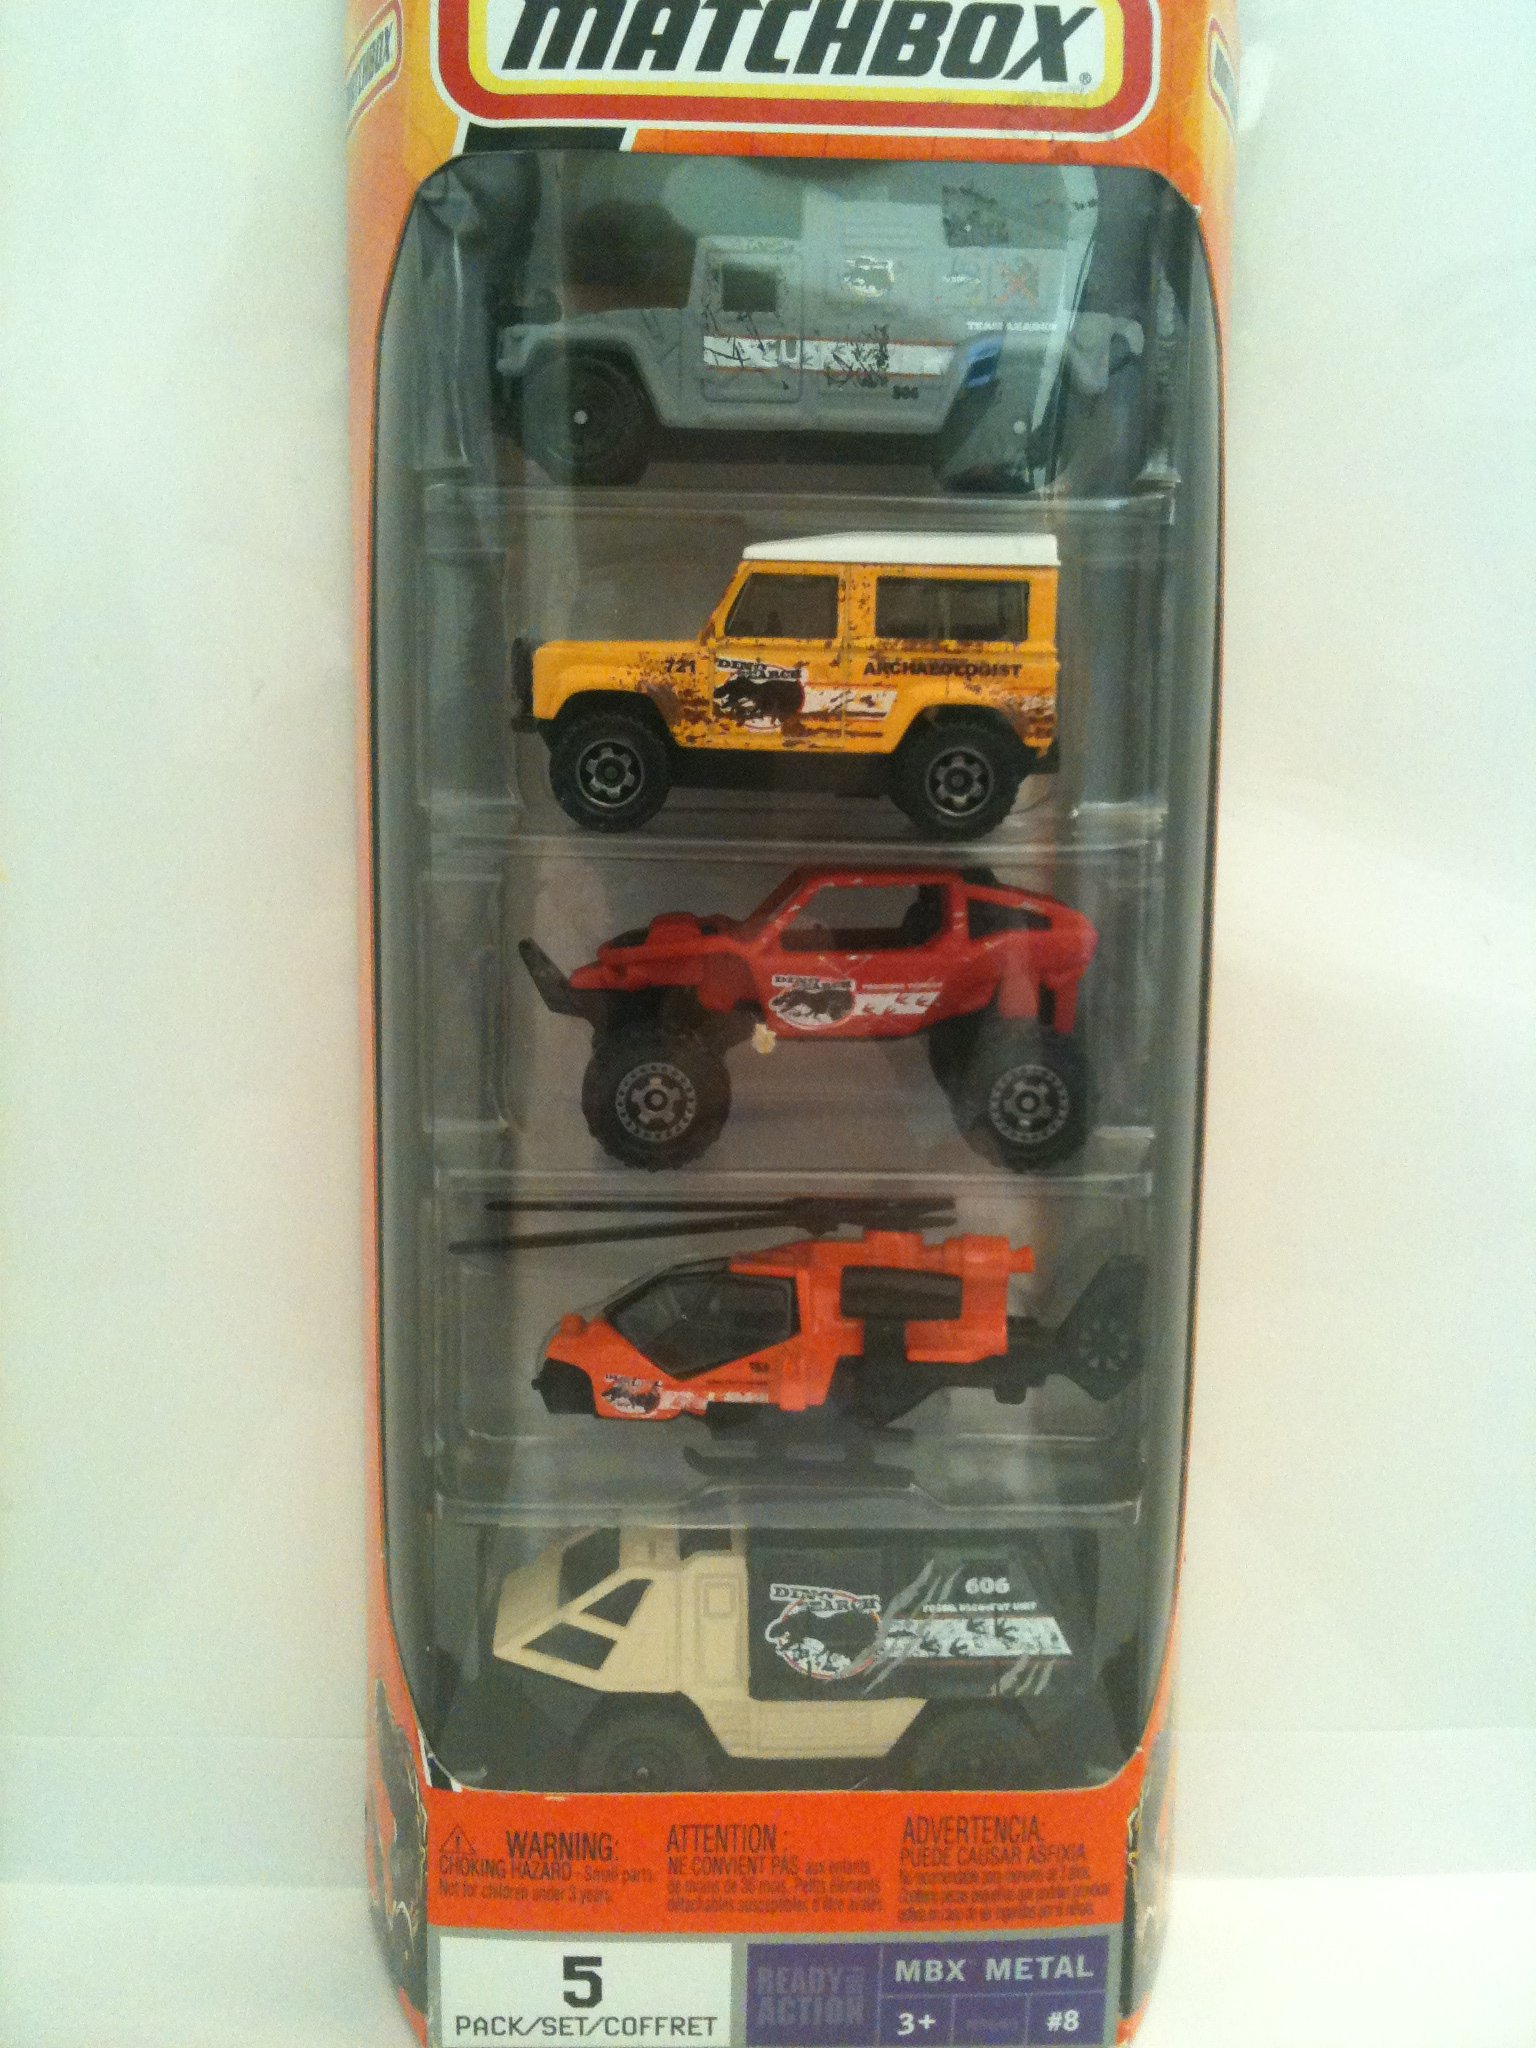 Mattel Matchbox Dino Adventure Vehicles 5-Pack #8 by Matchbox: Amazon.es: Juguetes y juegos